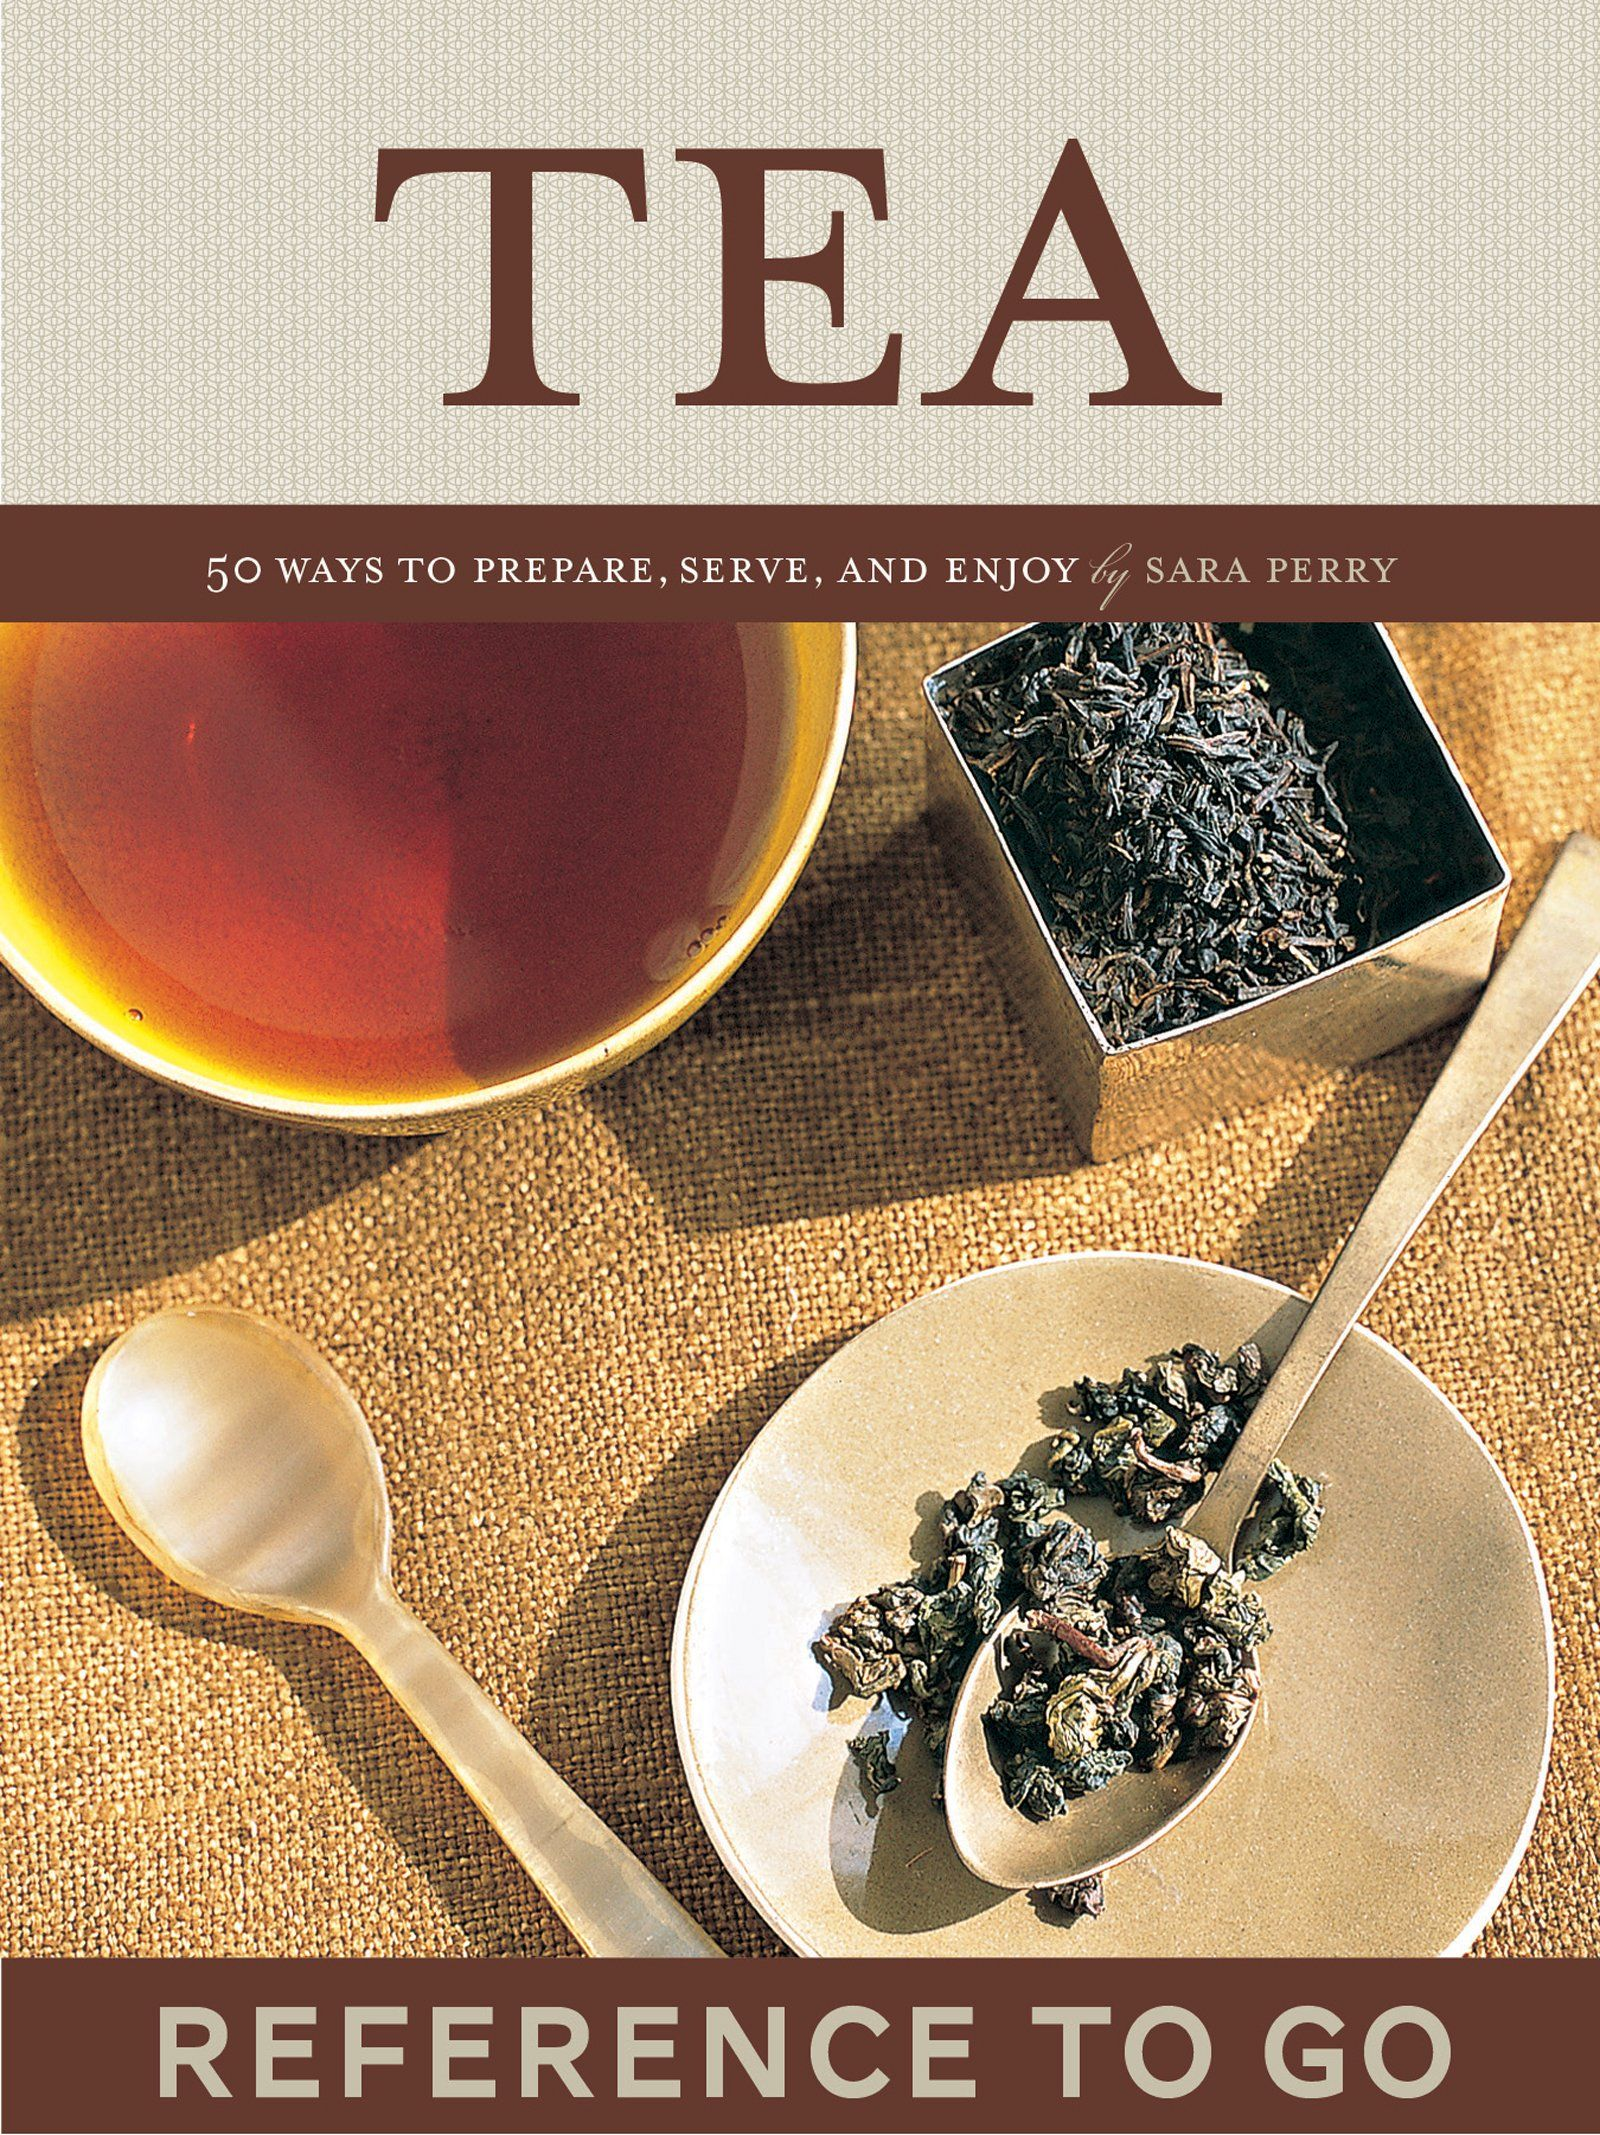 Tea: Reference to Go: 50 Ways to Prepare, Serve, and Enjoy:Amazon:Kindle Store